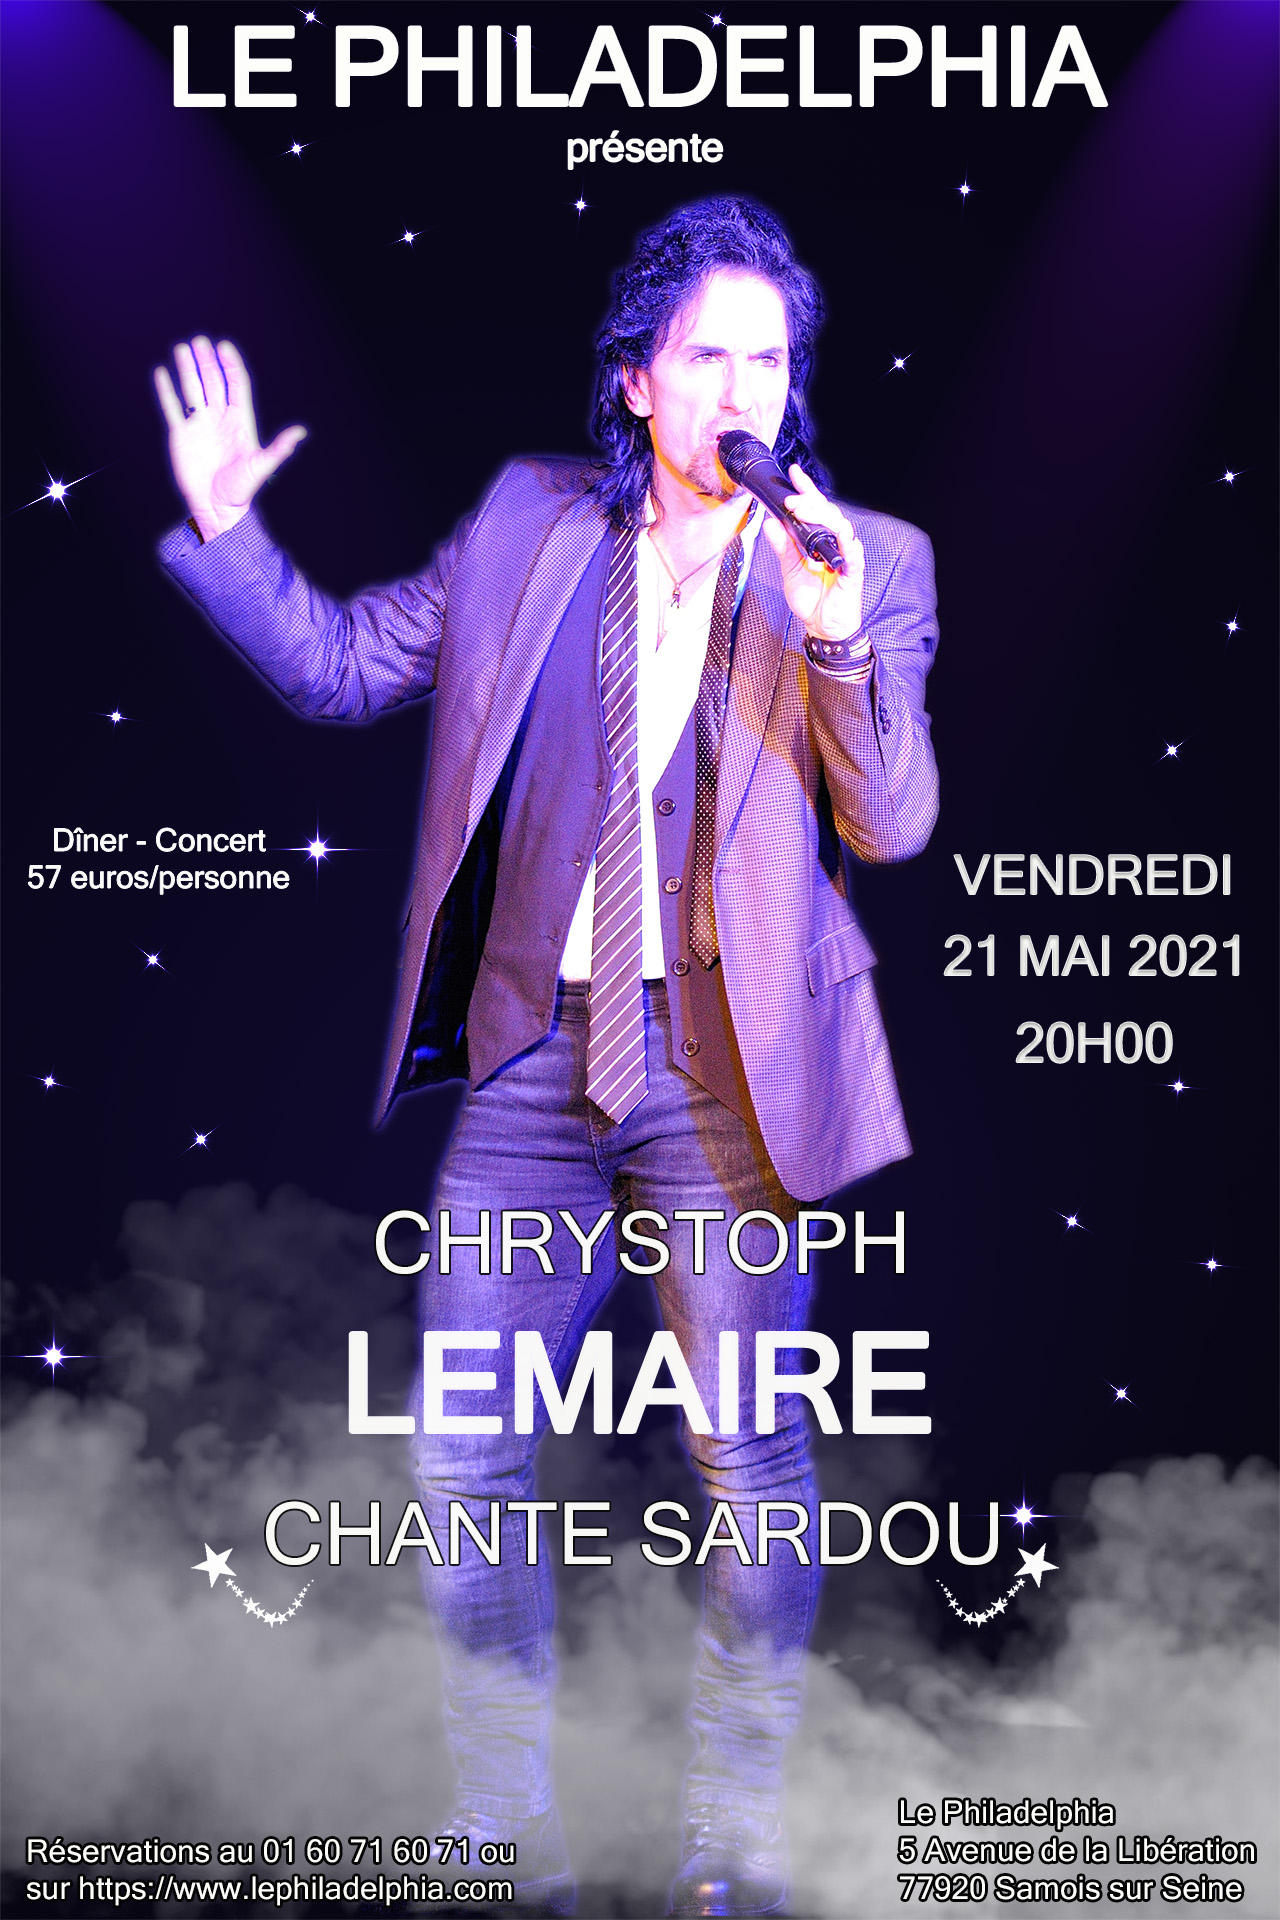 Chrystoph Lemaire chante Sardou